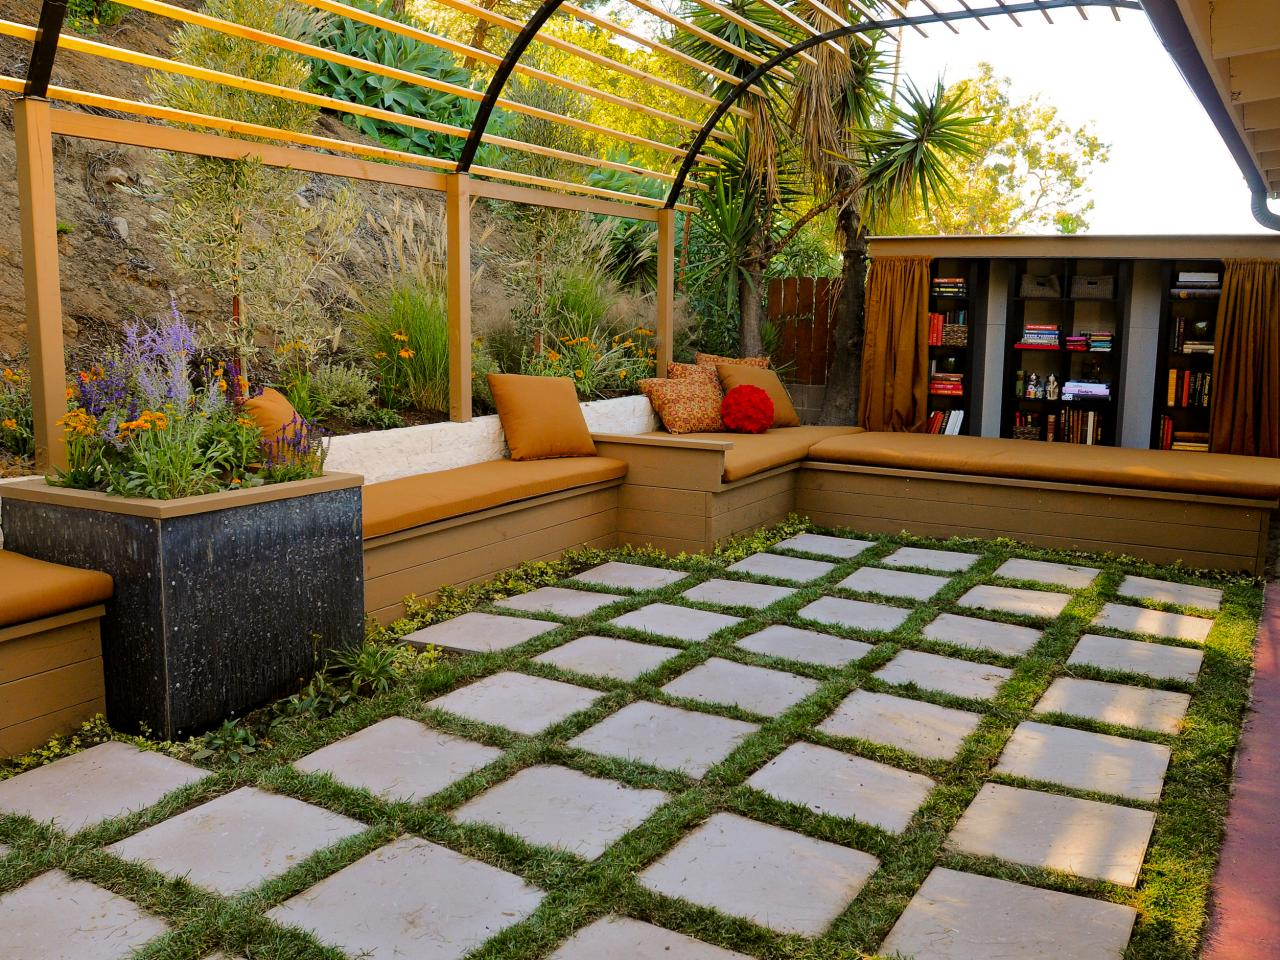 Design tips for beautiful pergolas outdoor spaces for Garden space ideas